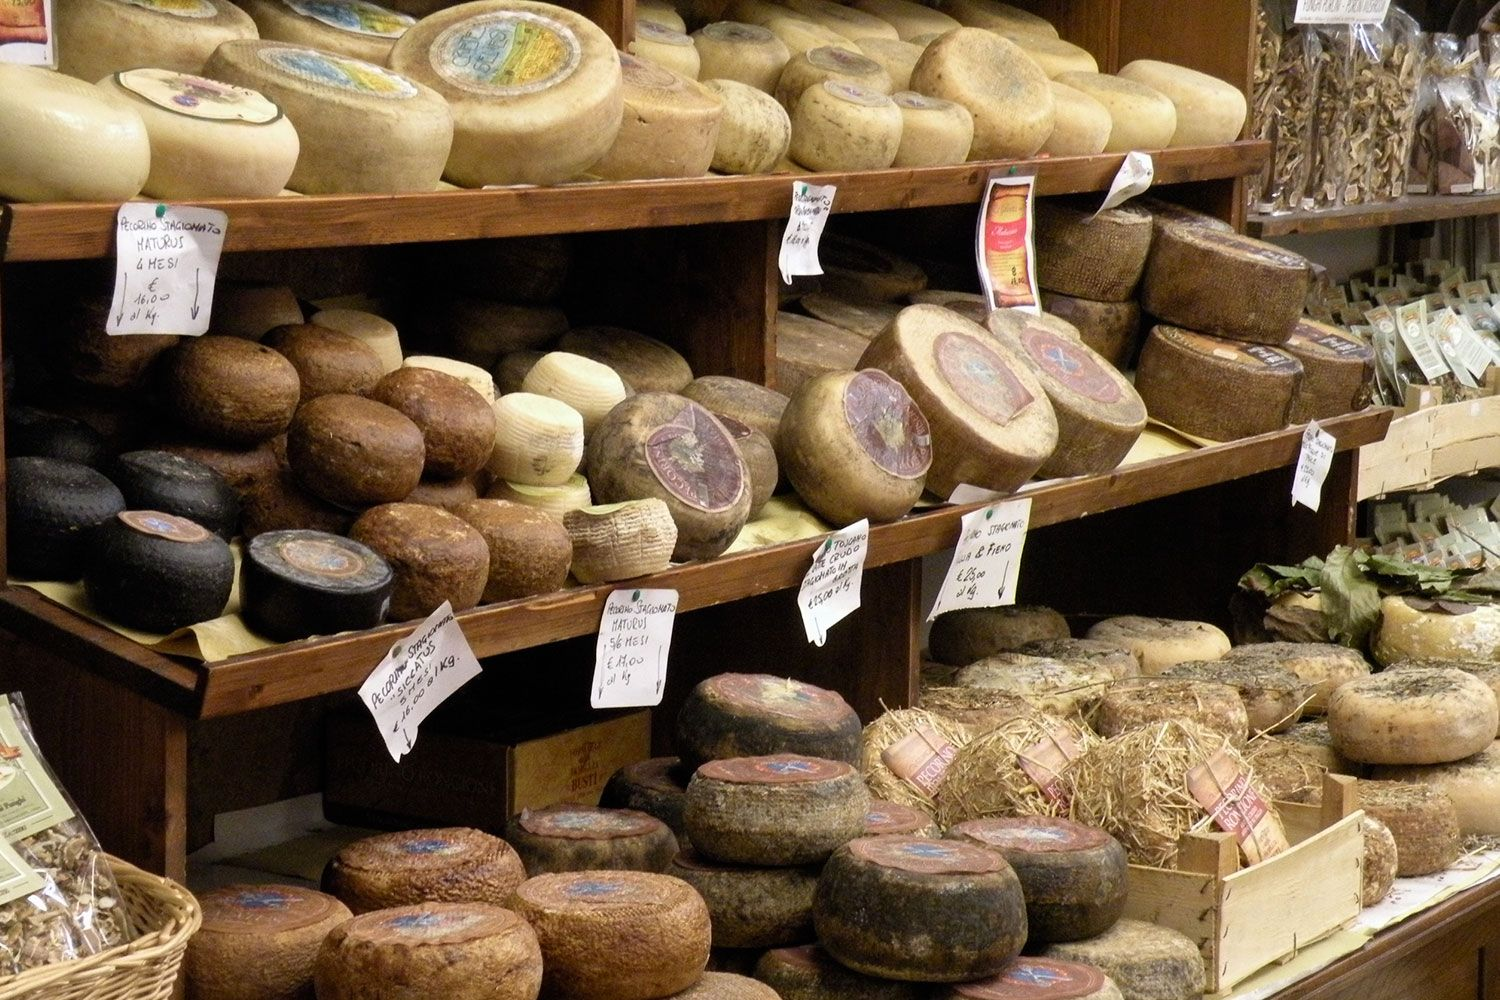 A selection of Pecorino cheeses on display in Pienza.